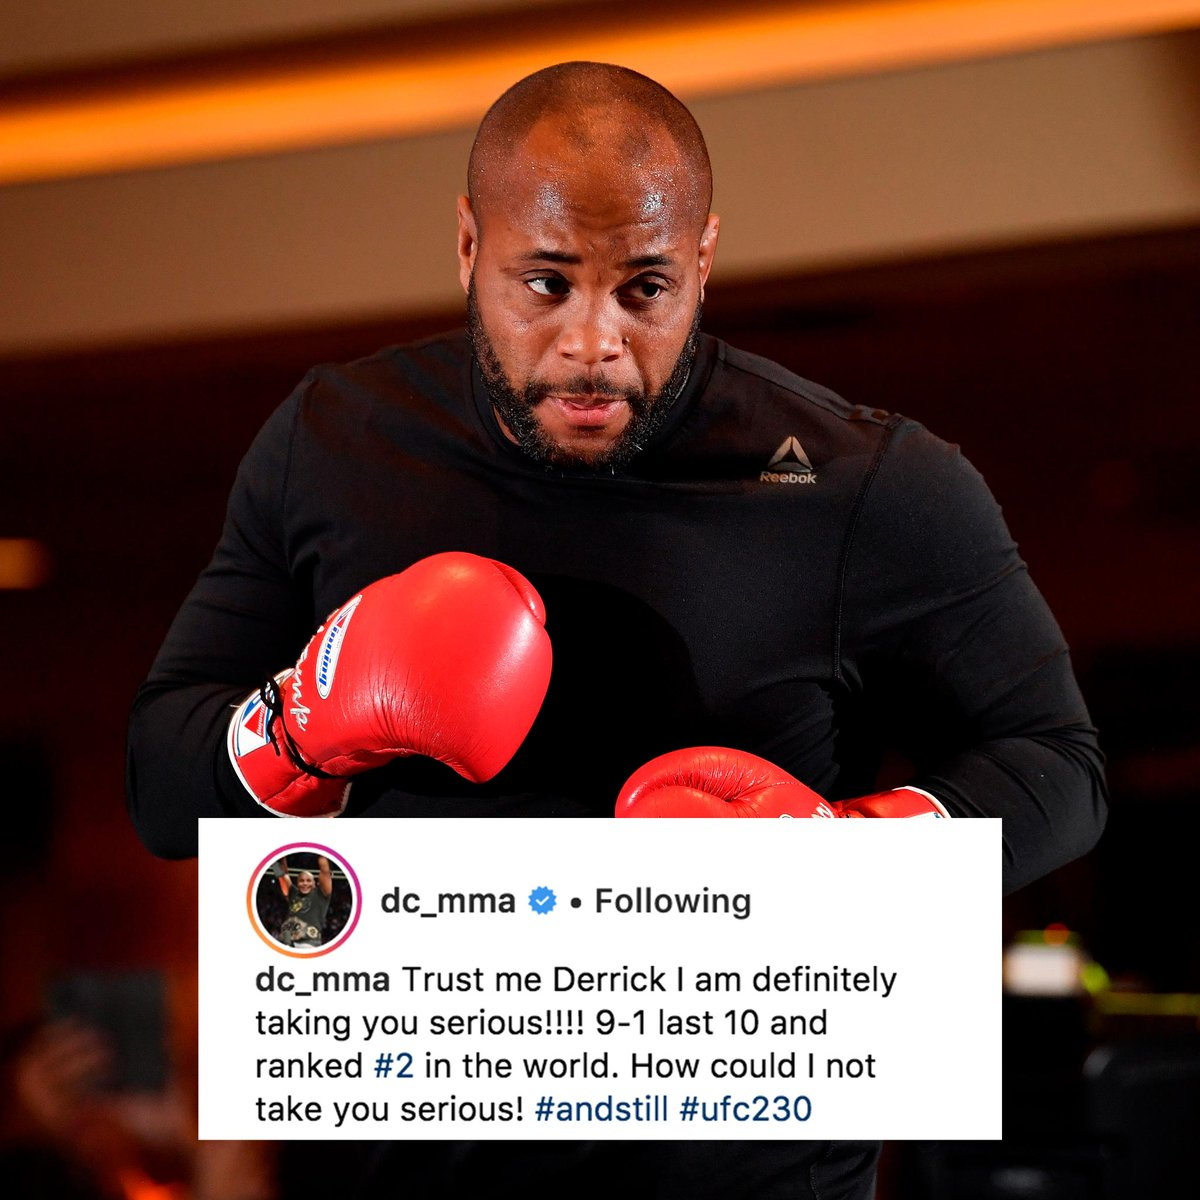 The champ has a message for his opponent. #UFC230